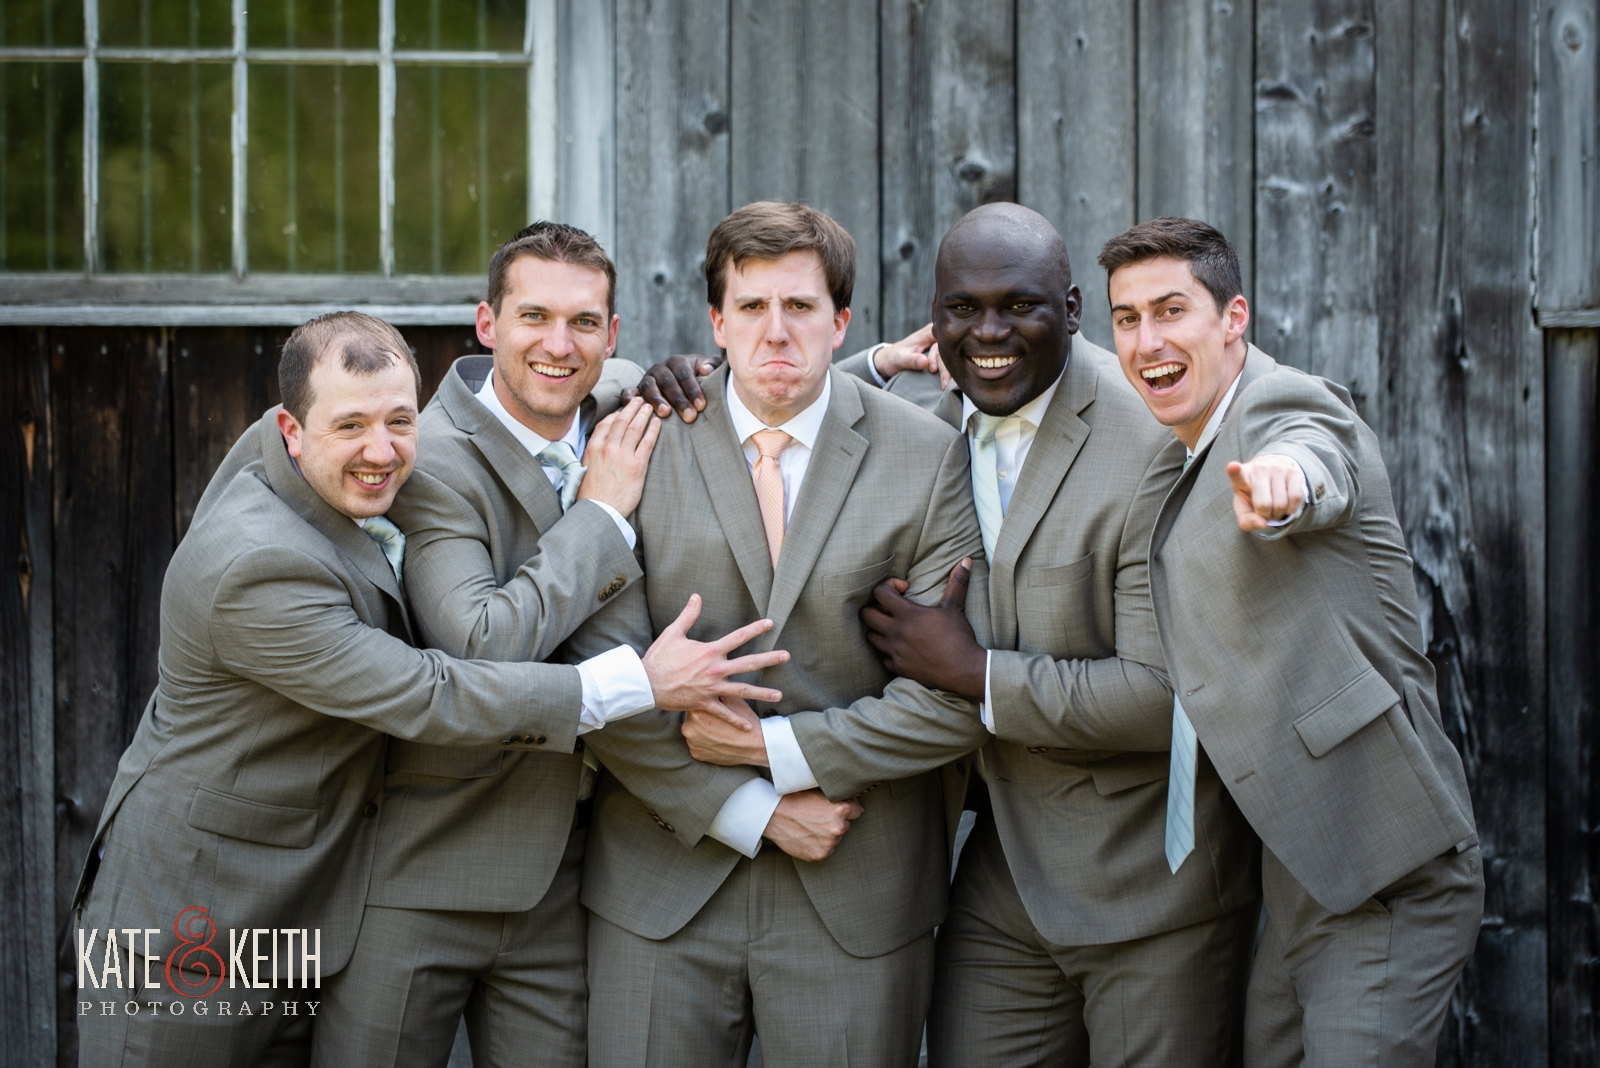 fun portrait with groom and groomsmen, silly wedding party photos